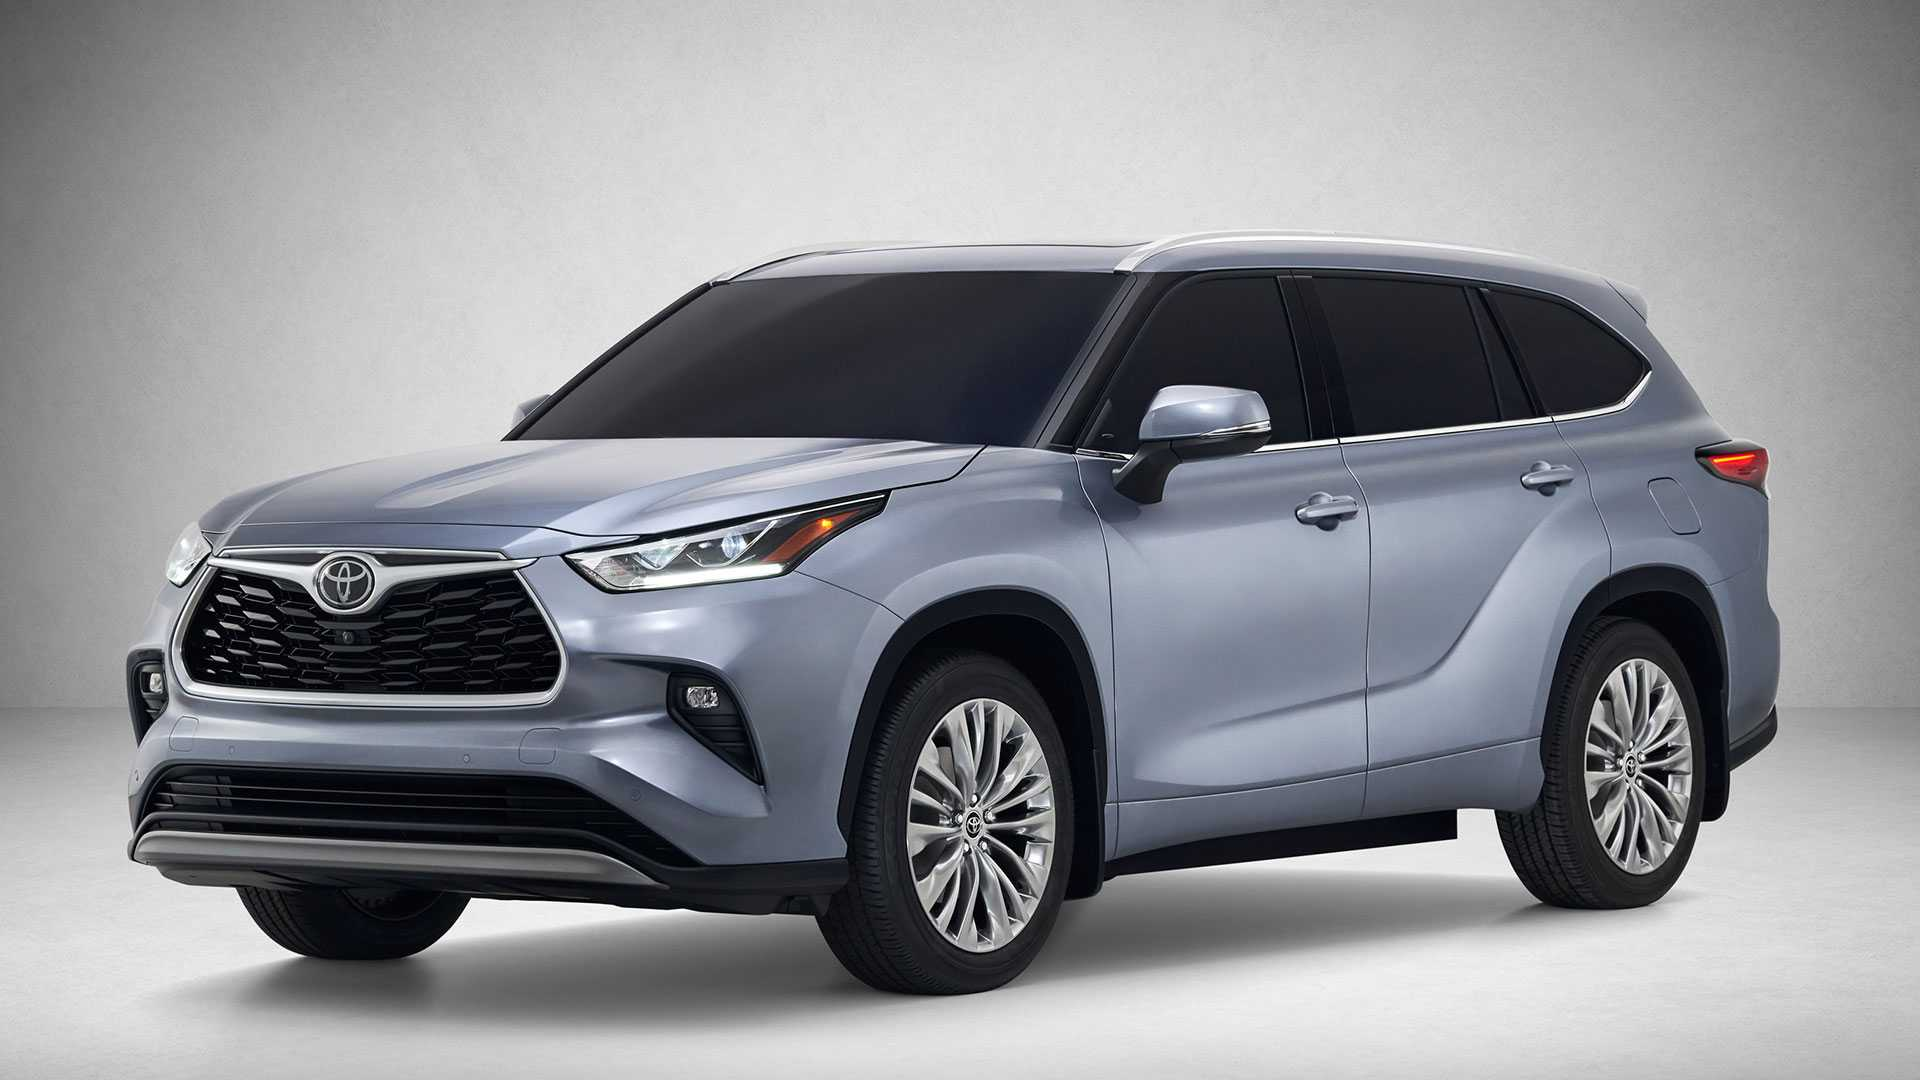 31 All New 2020 Toyota Highlander Spesification